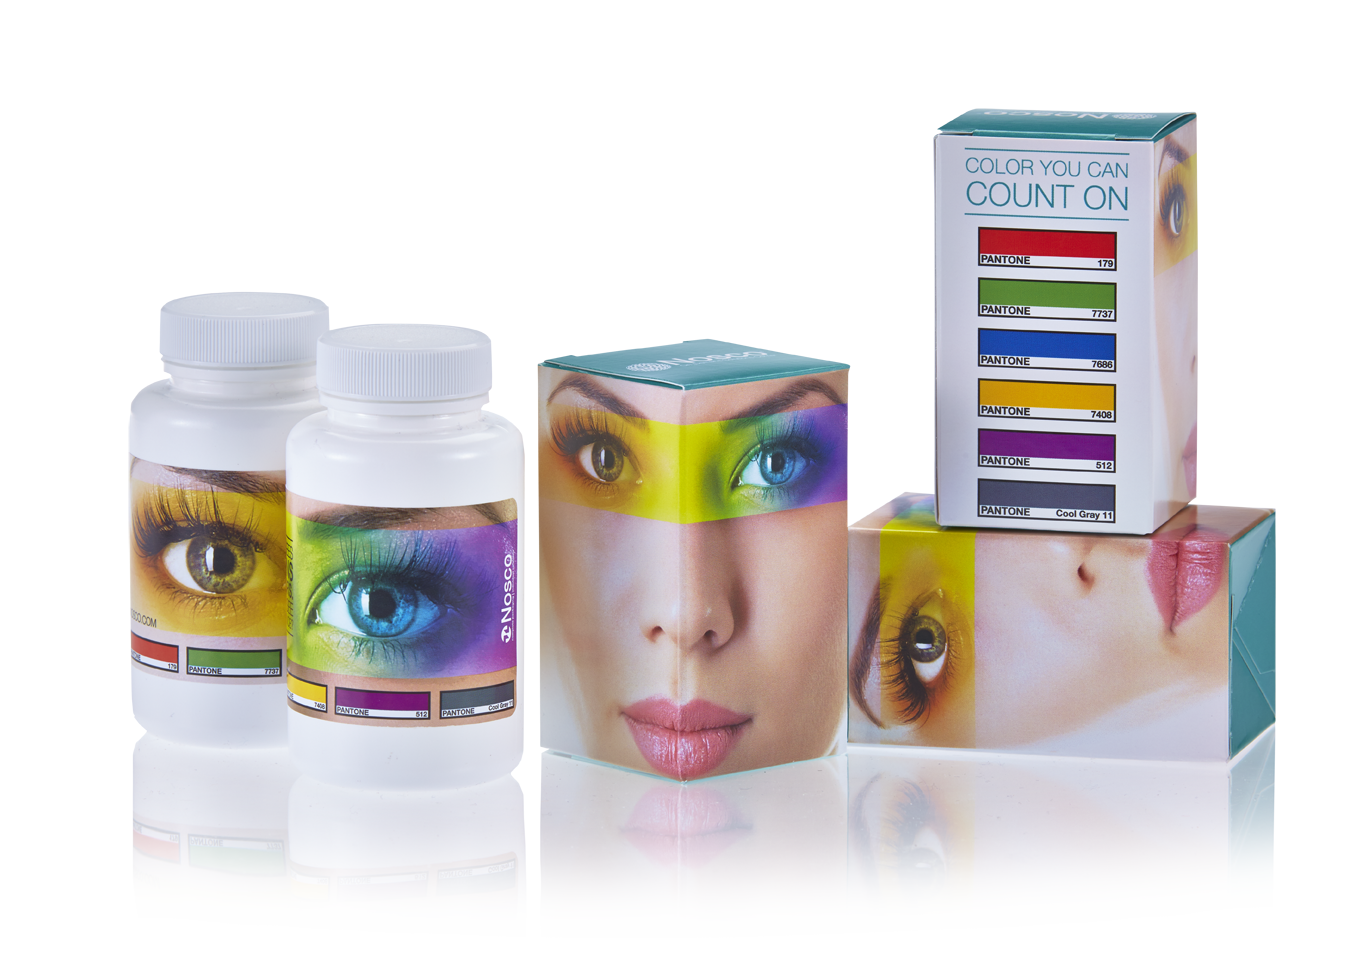 How digital printing improves packaging campaigns